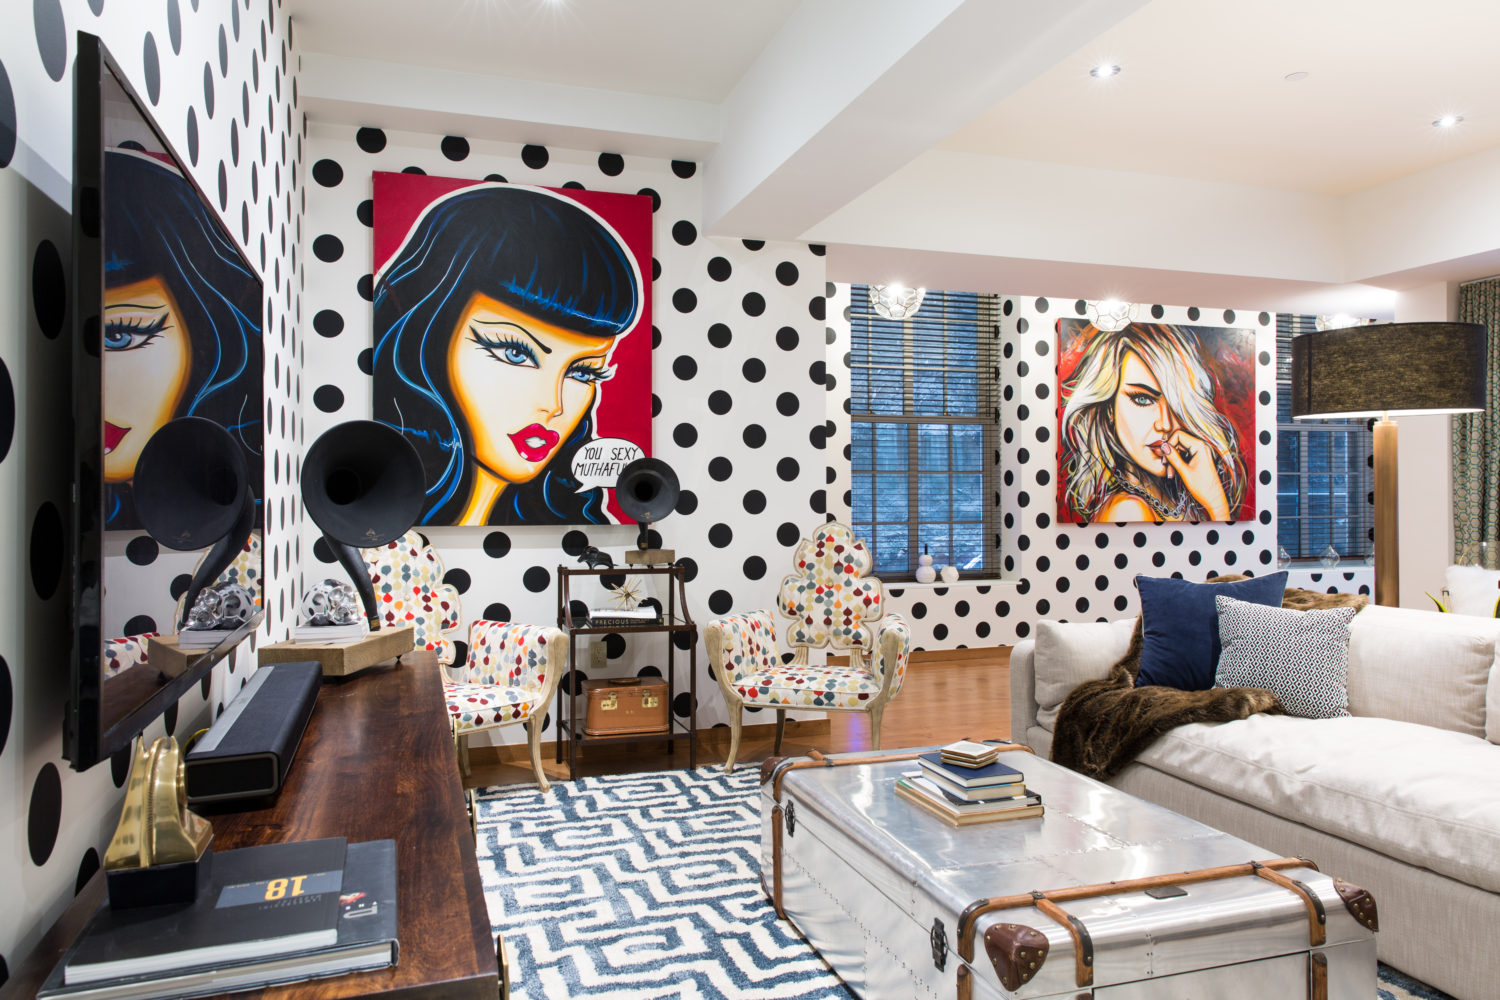 Washington Square Park Eclectic Home designed by Joe Human- Manhattan, NY